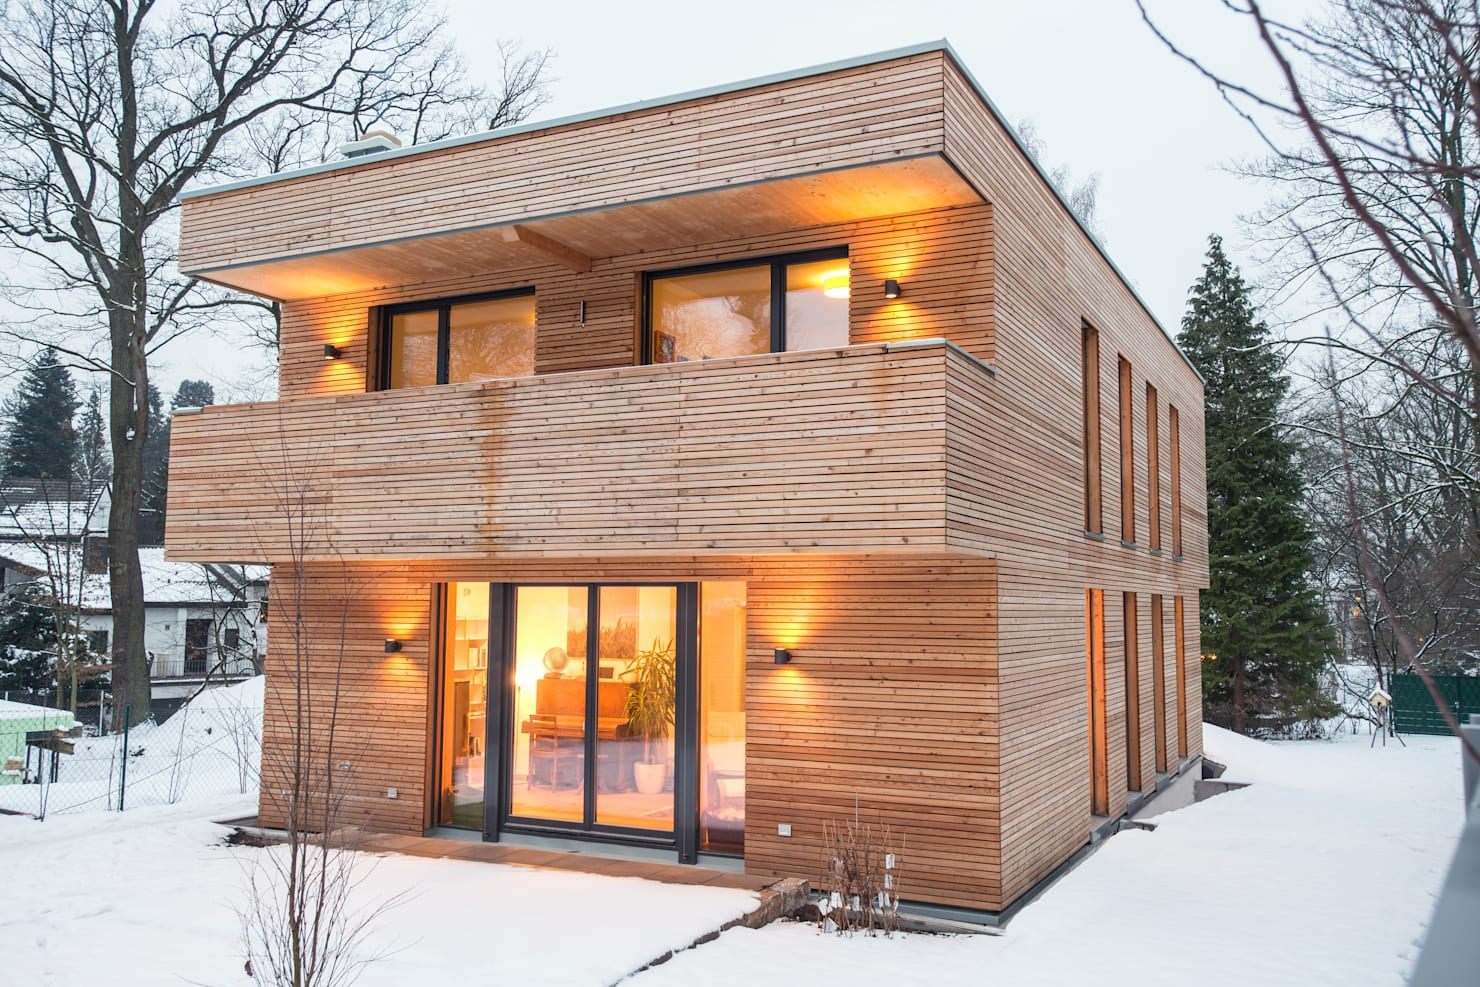 A cosy and warm wooden home